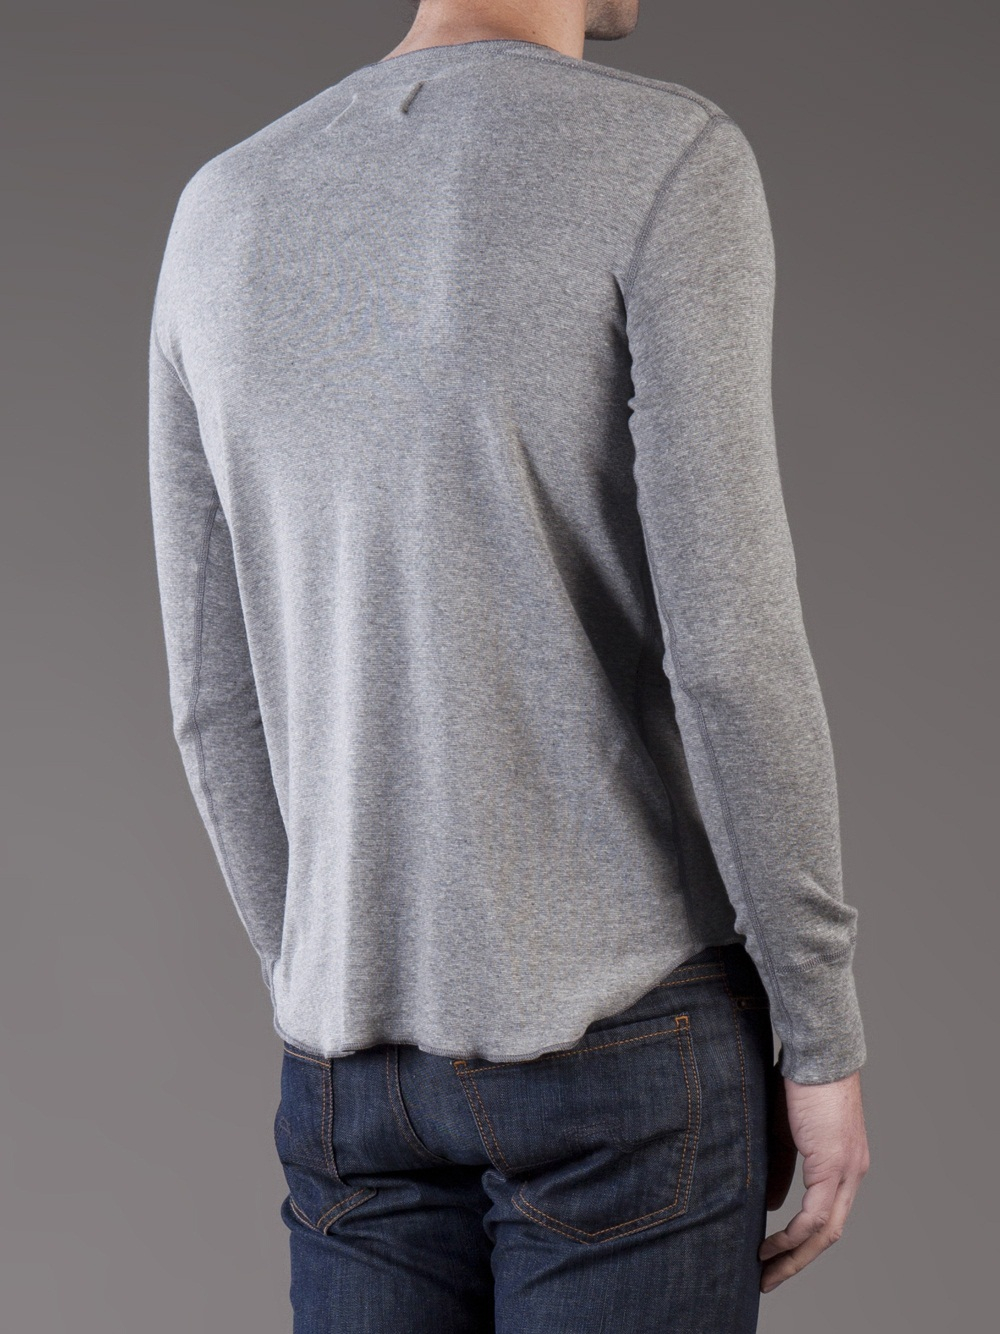 henley long sleeve shirt - Grey Wings+Horns Cheap Footlocker Pictures Discount Outlet Store Affordable rUvCv